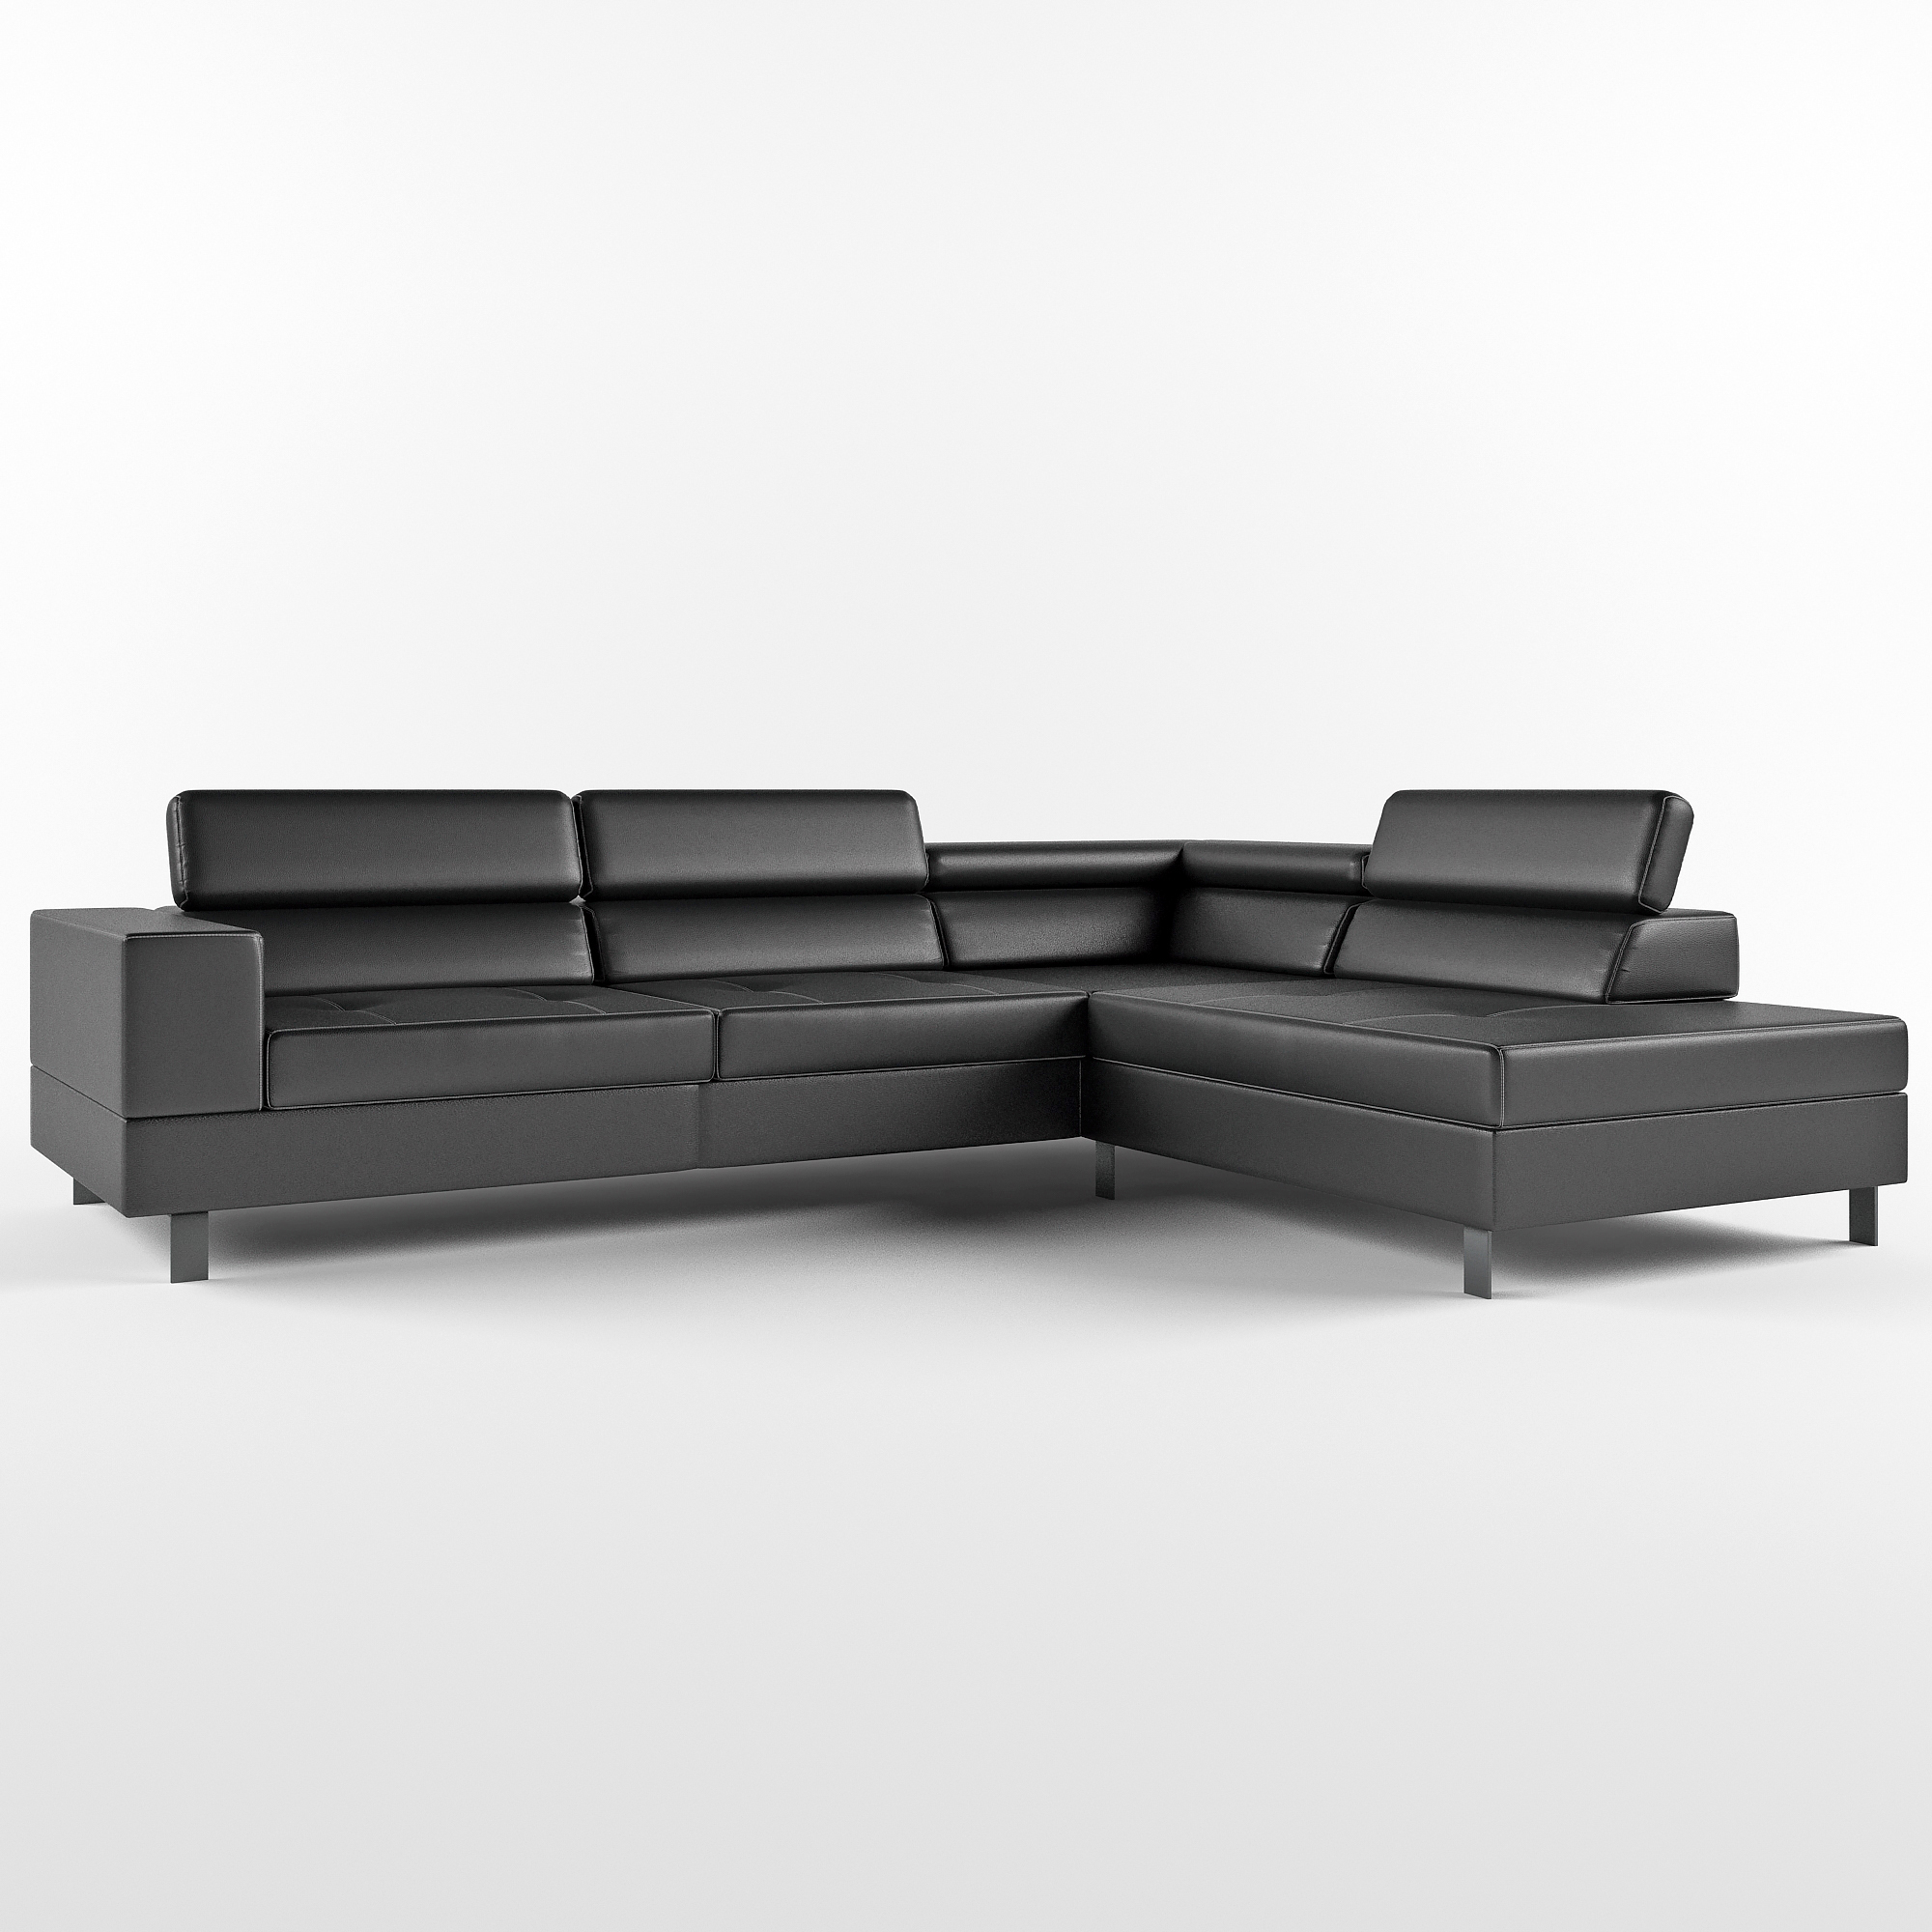 Brilliant Corner Sofa With Black Leathered Base Caraccident5 Cool Chair Designs And Ideas Caraccident5Info